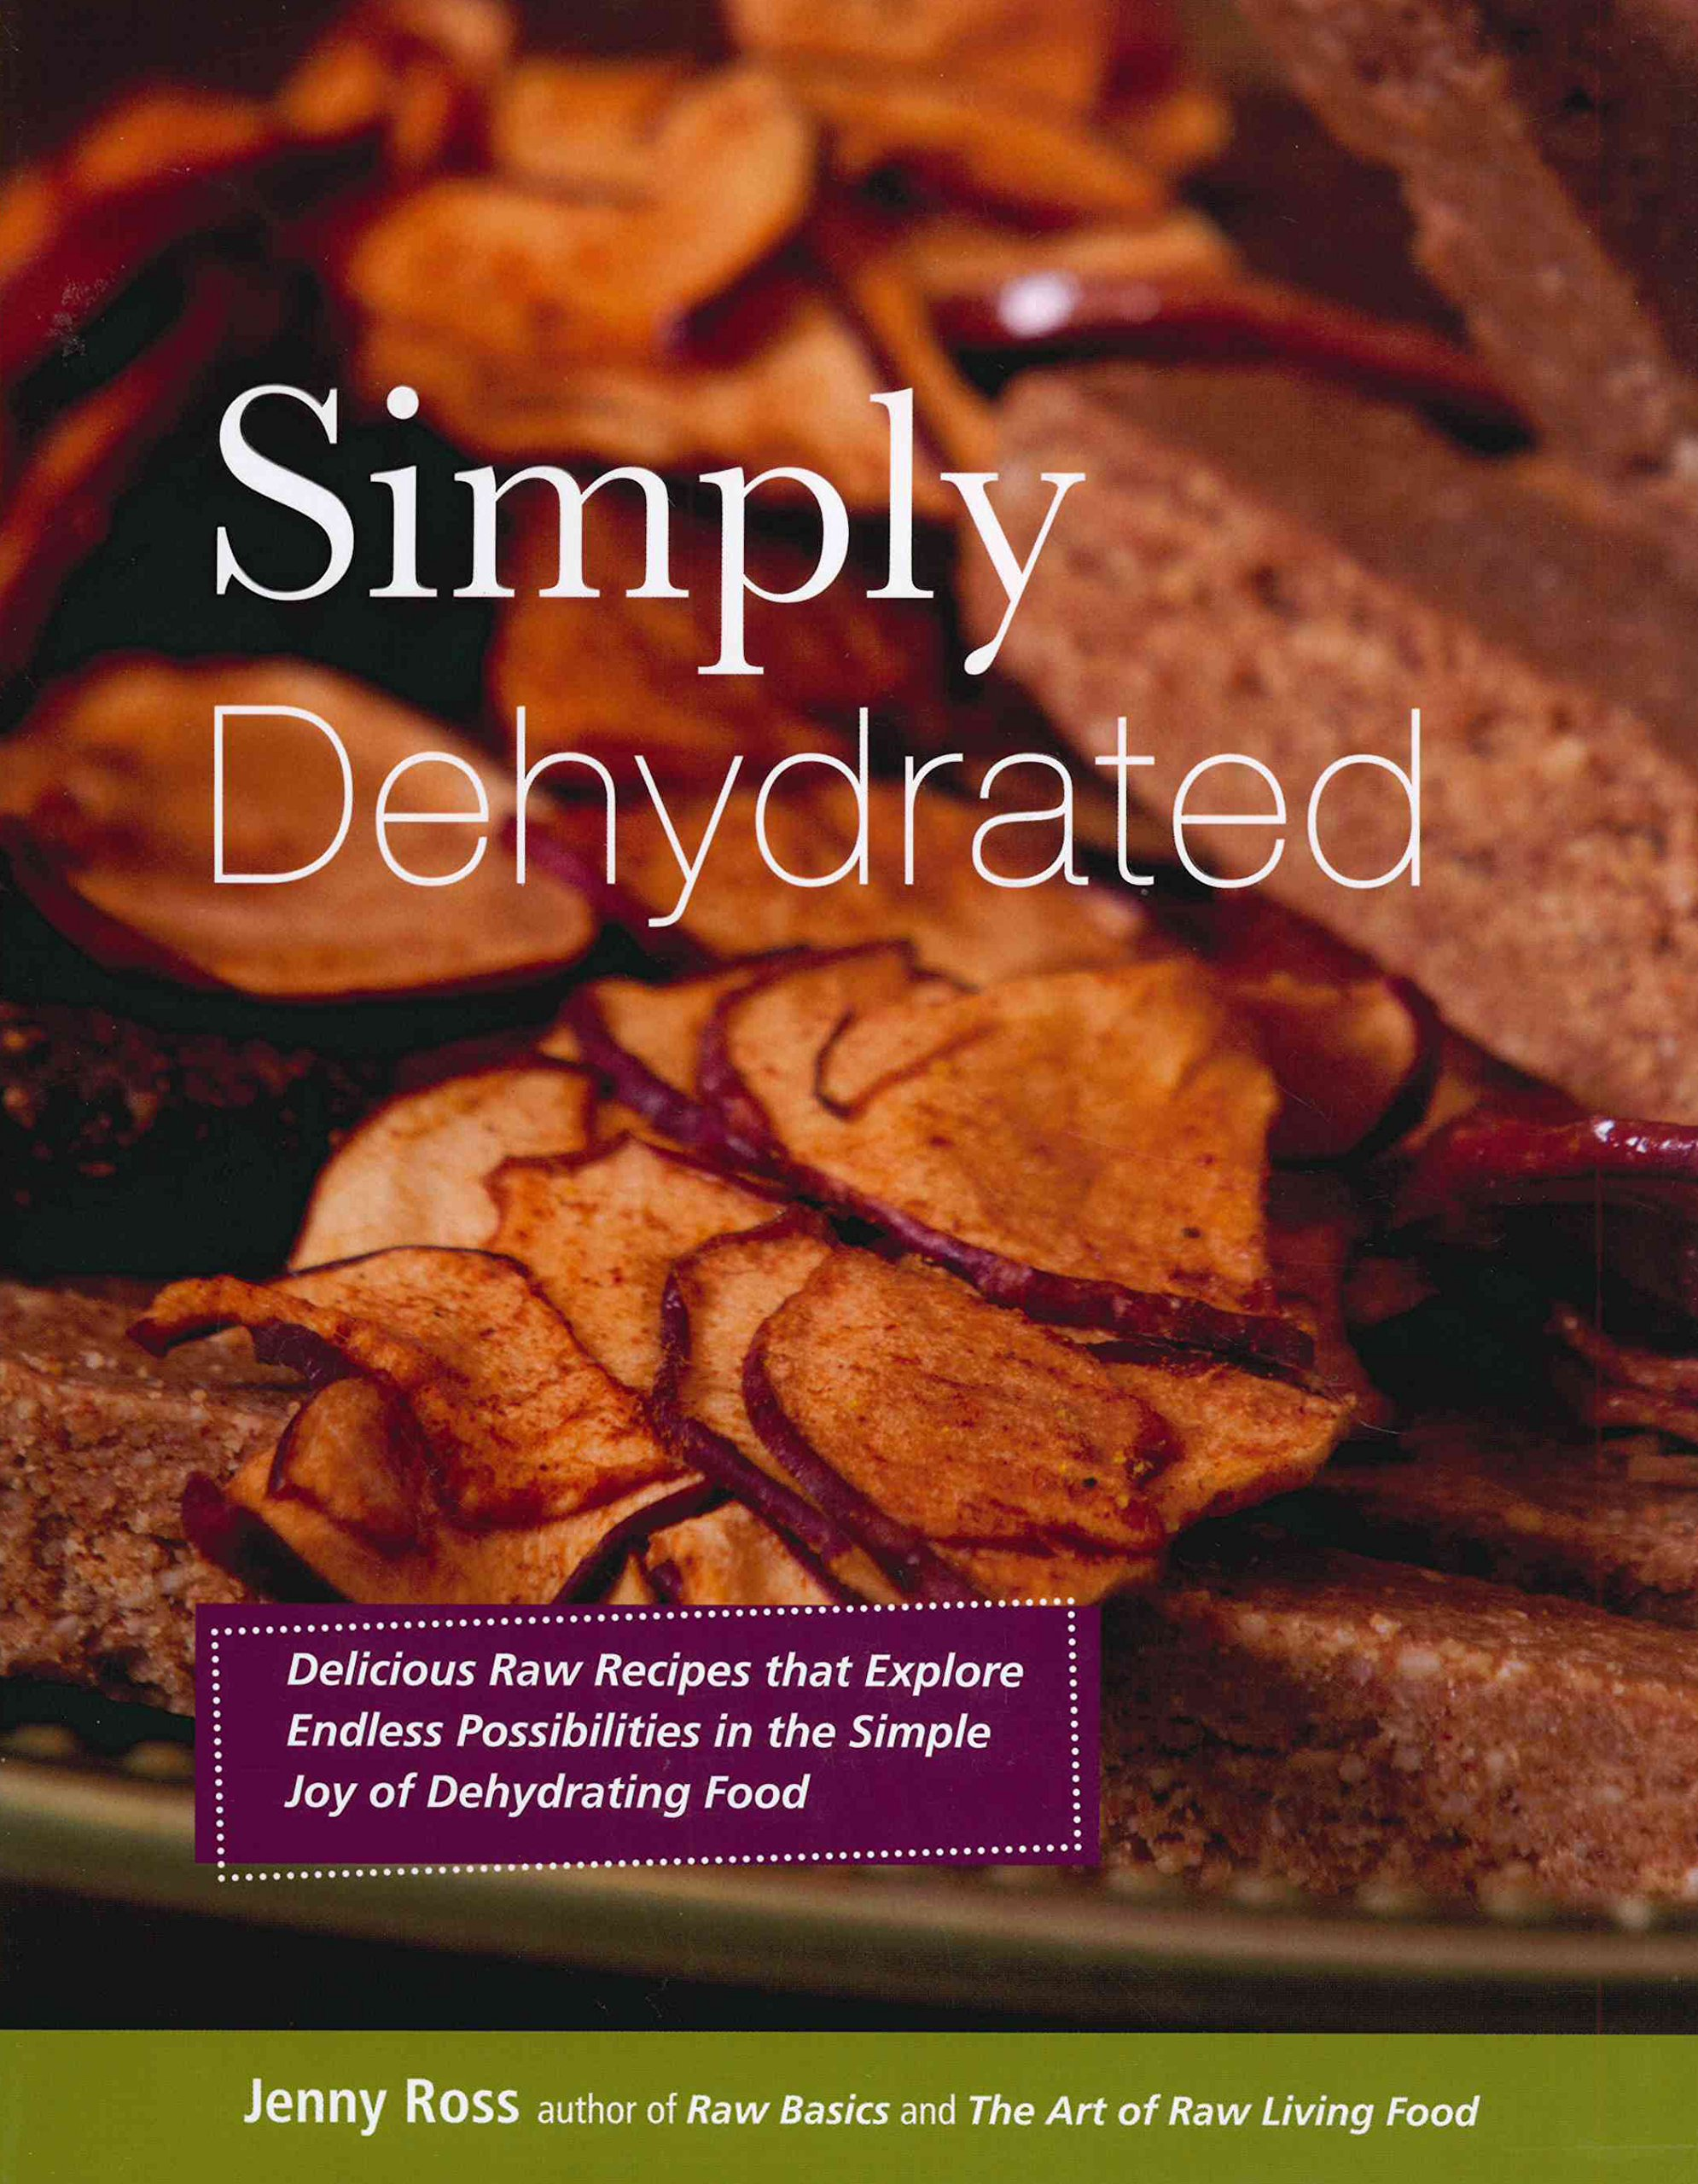 Simply dehydrated jenny ross 9780985906702 amazon books forumfinder Choice Image